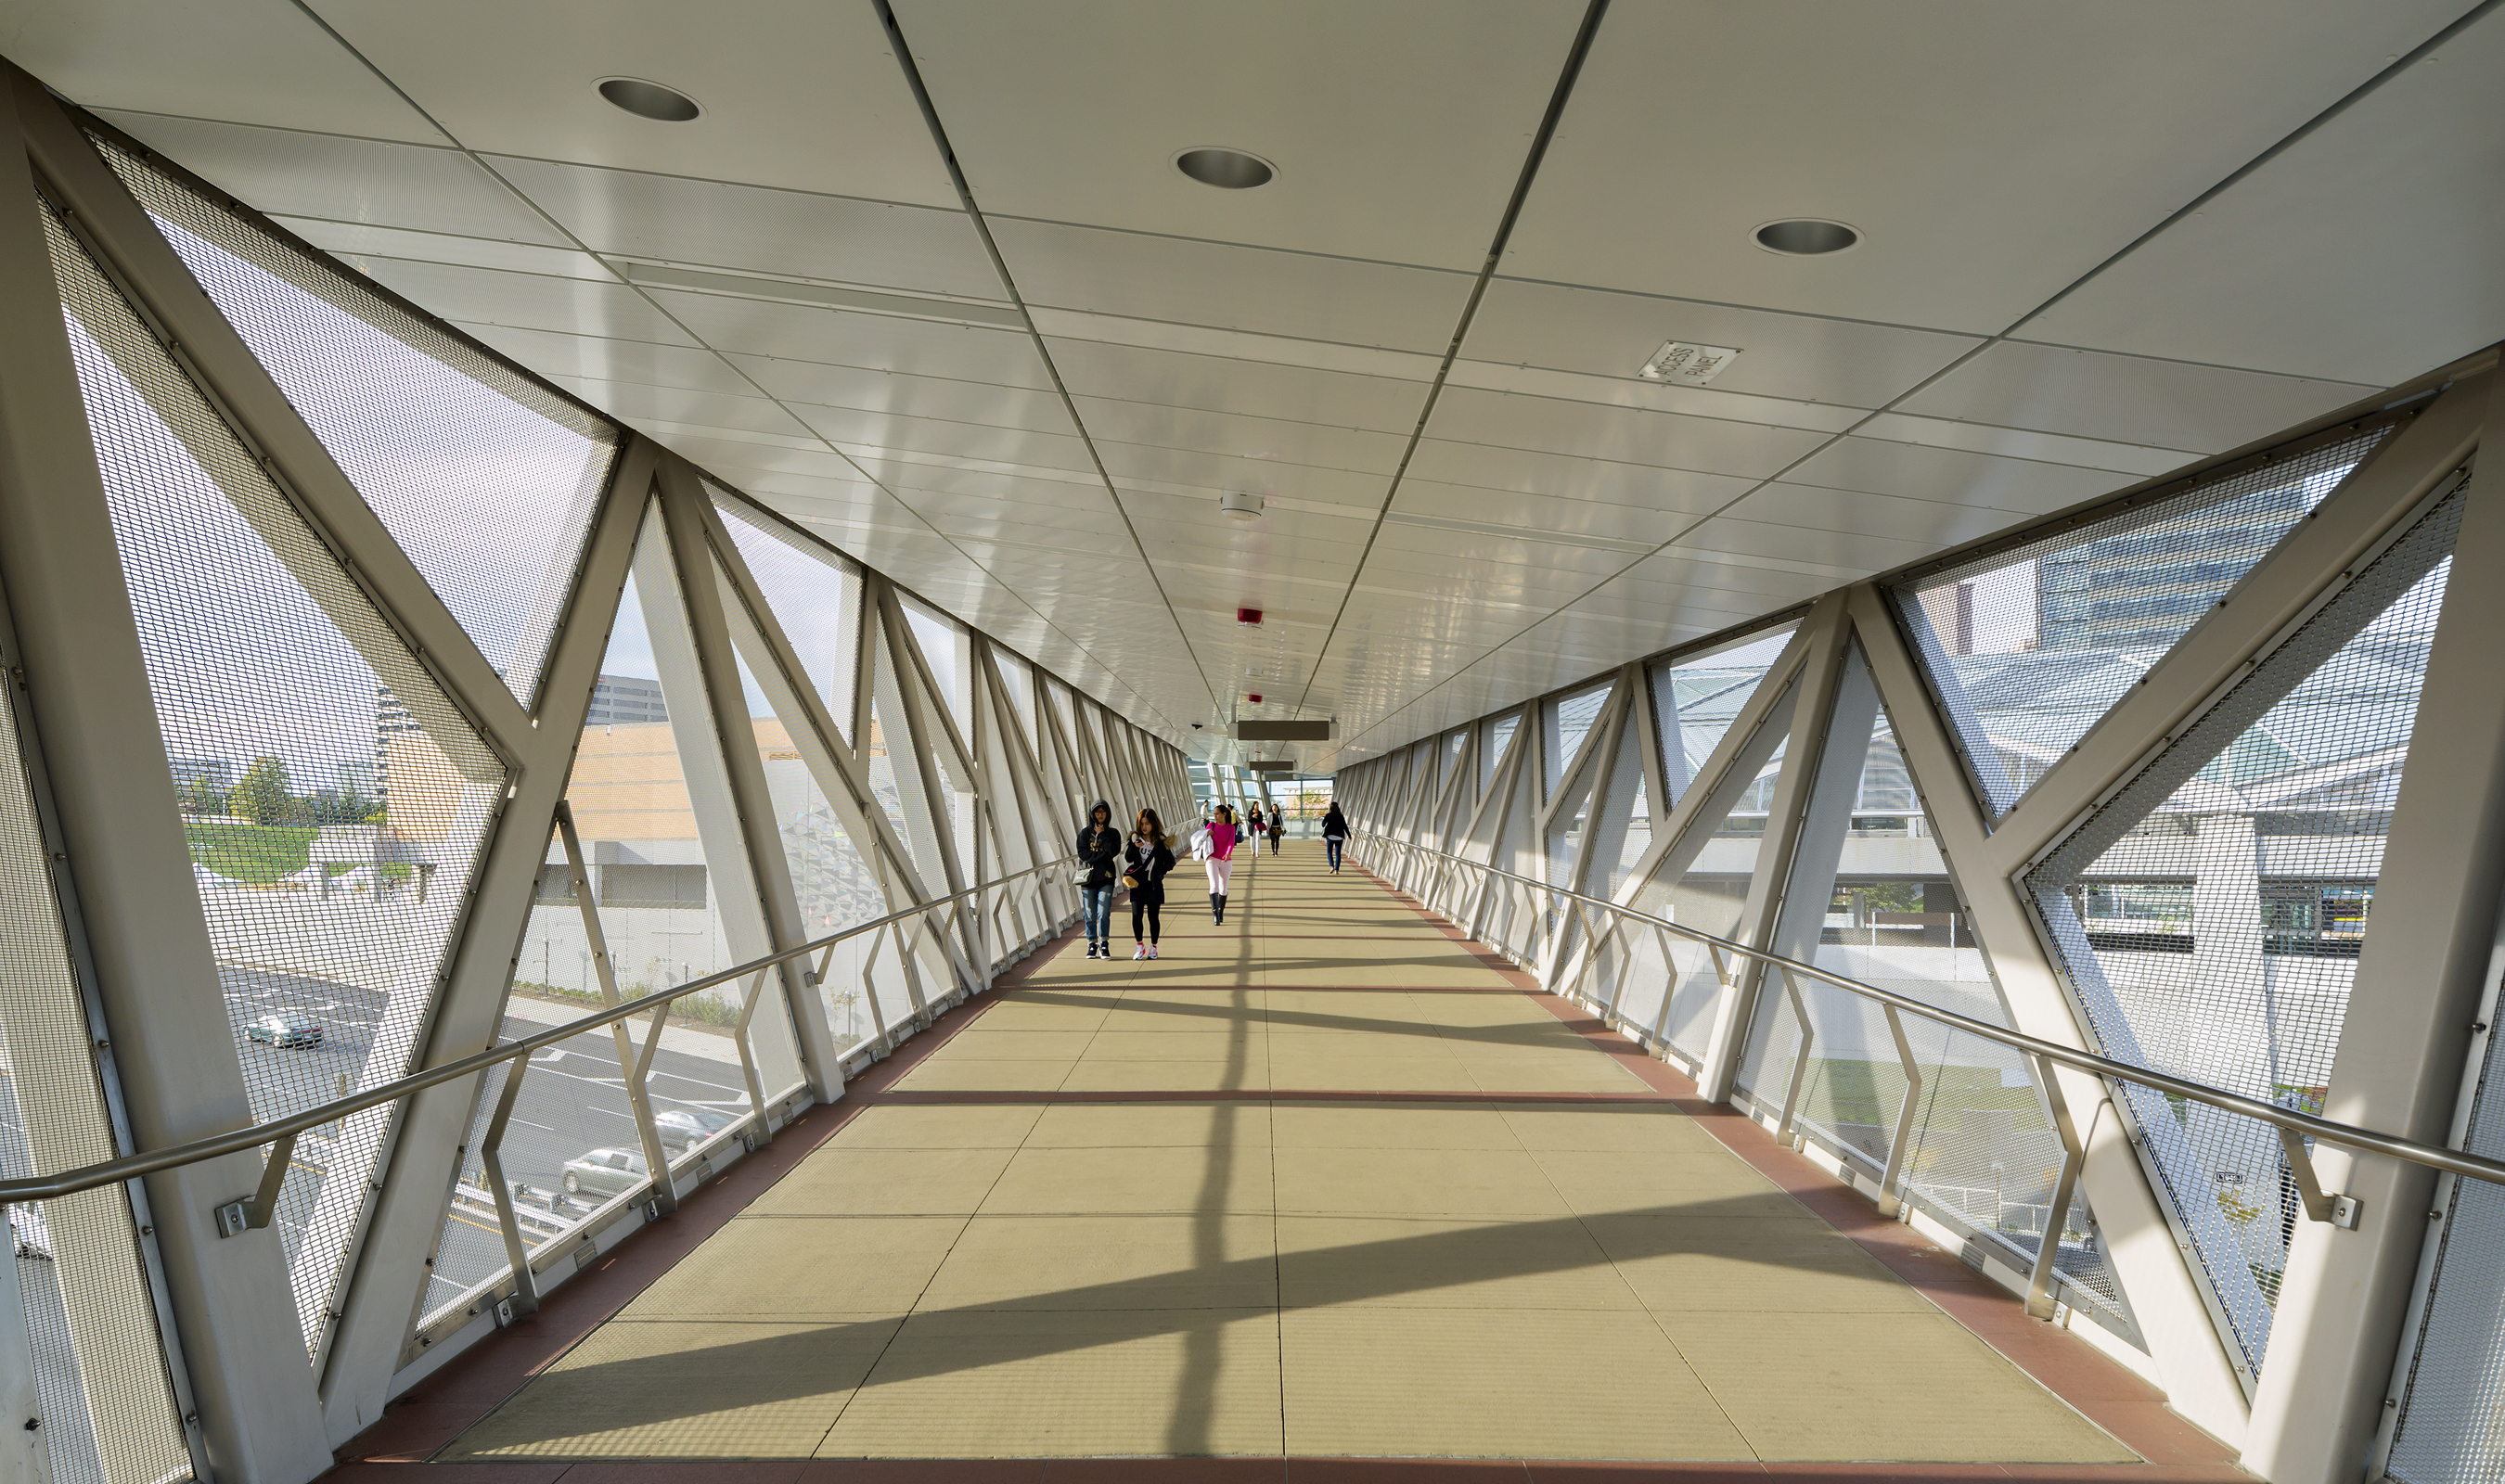 Banker Woven wire mesh was used to fill triangular openings in the pedestrian bridges.